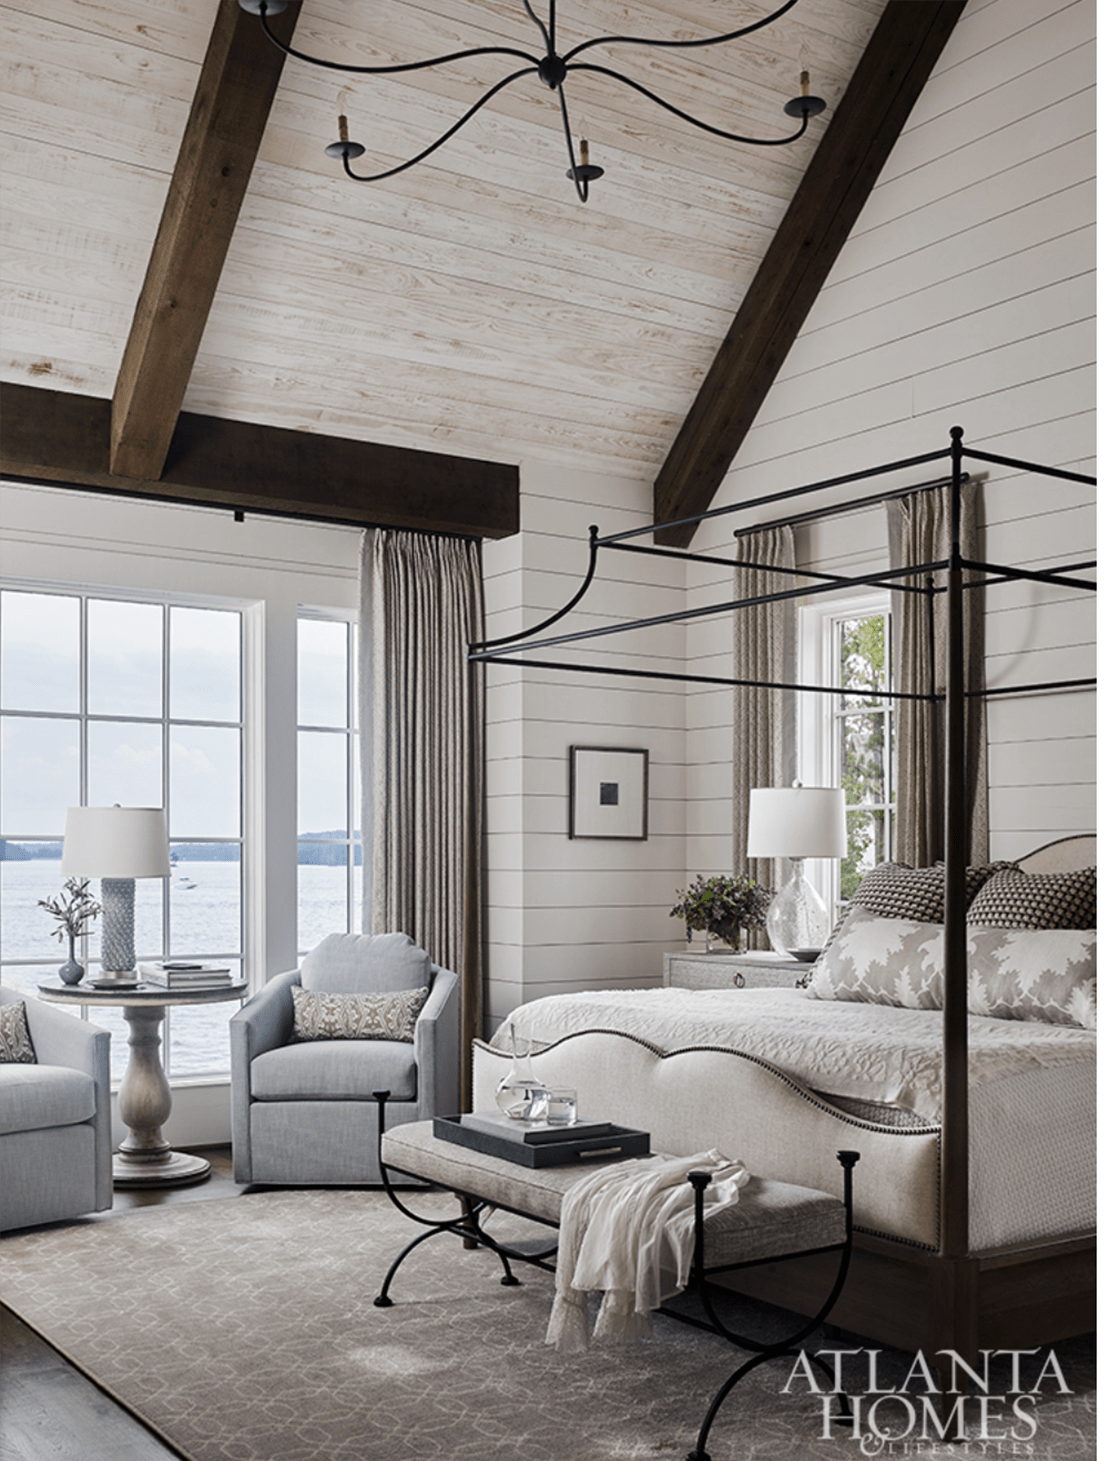 Atlanta Homes and Lifestyles Liz Williams Designed Bedroom